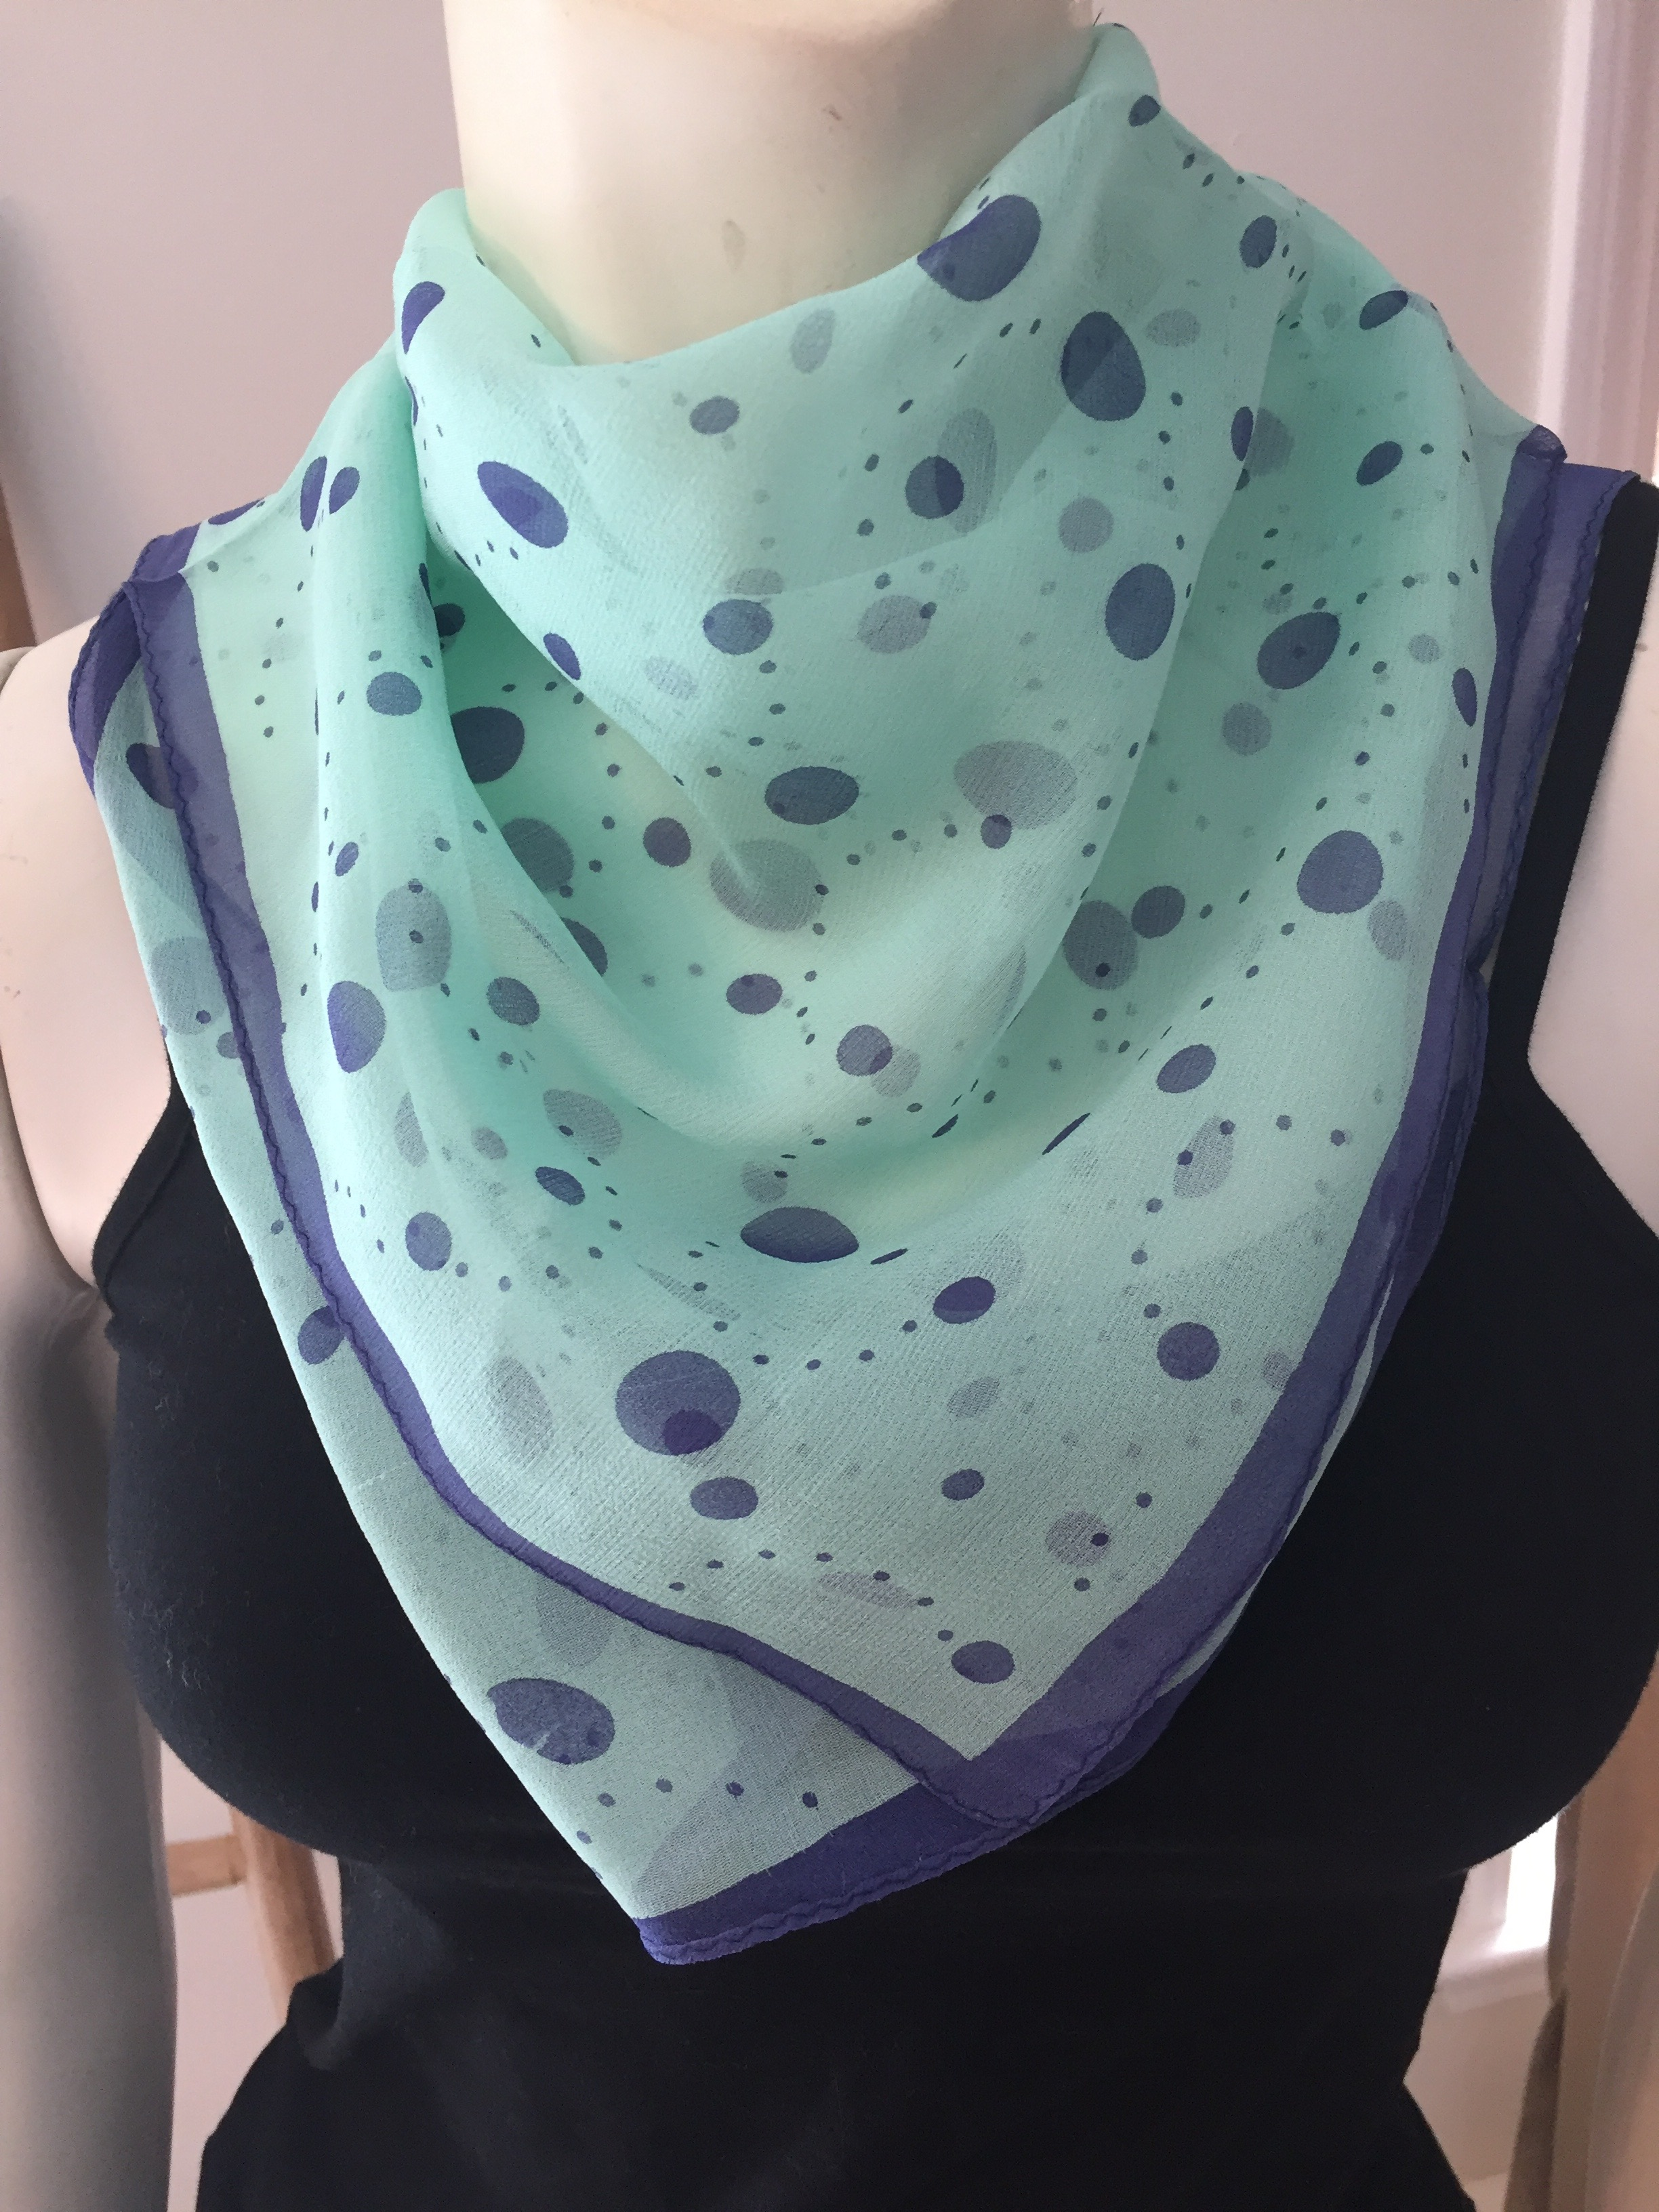 Teal and Blue Polka Dot Silk Neckerchief